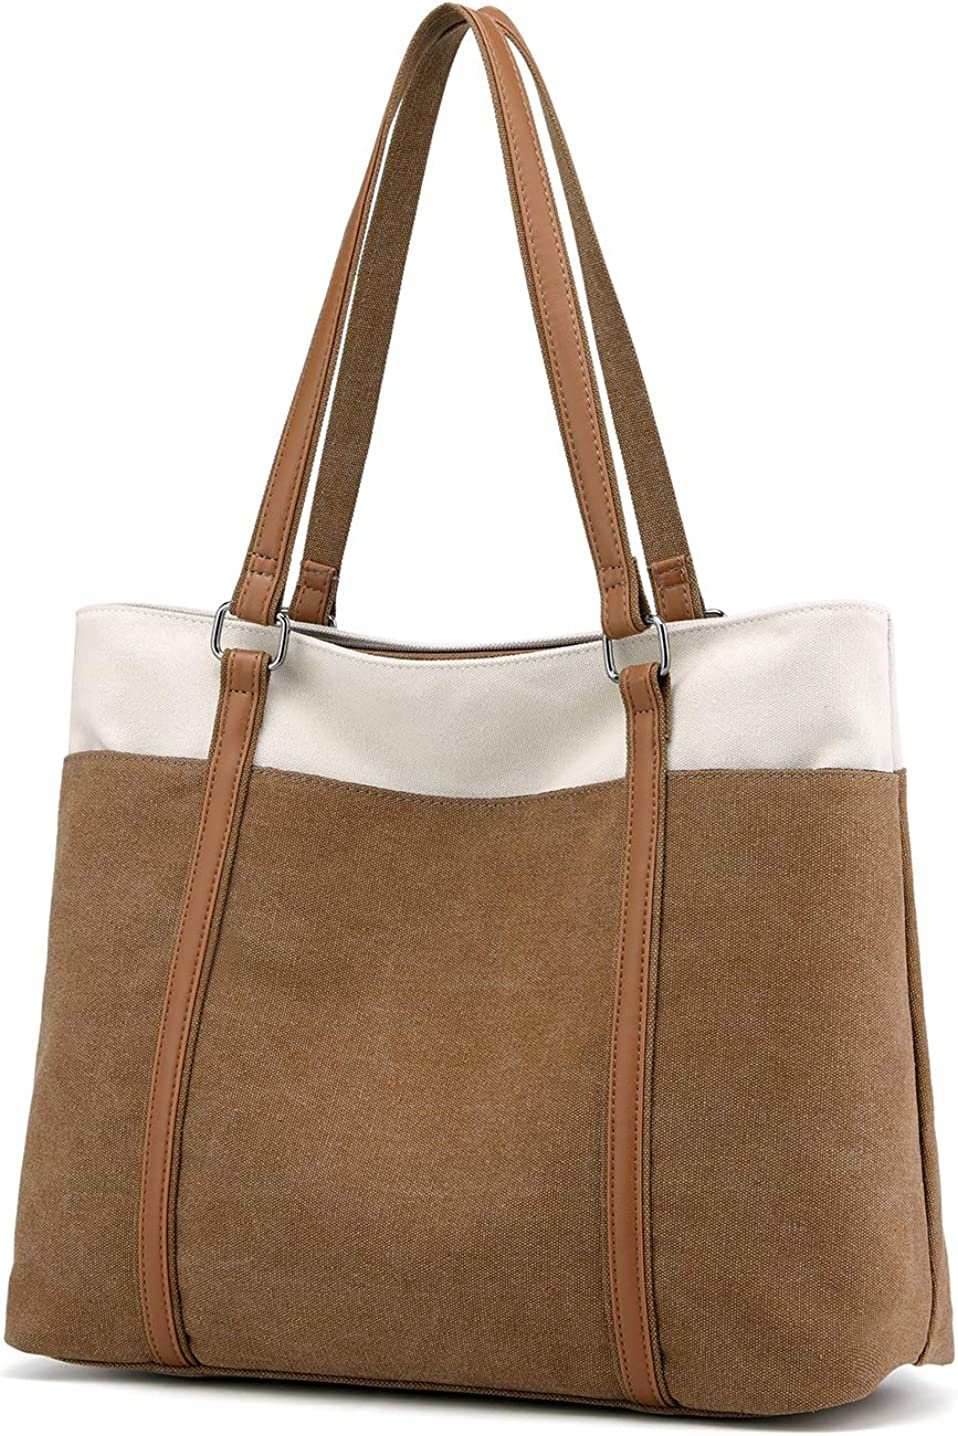 Wxnow Women Laptop Tote Bag Canvas Handbag Purse Shoulder Bag